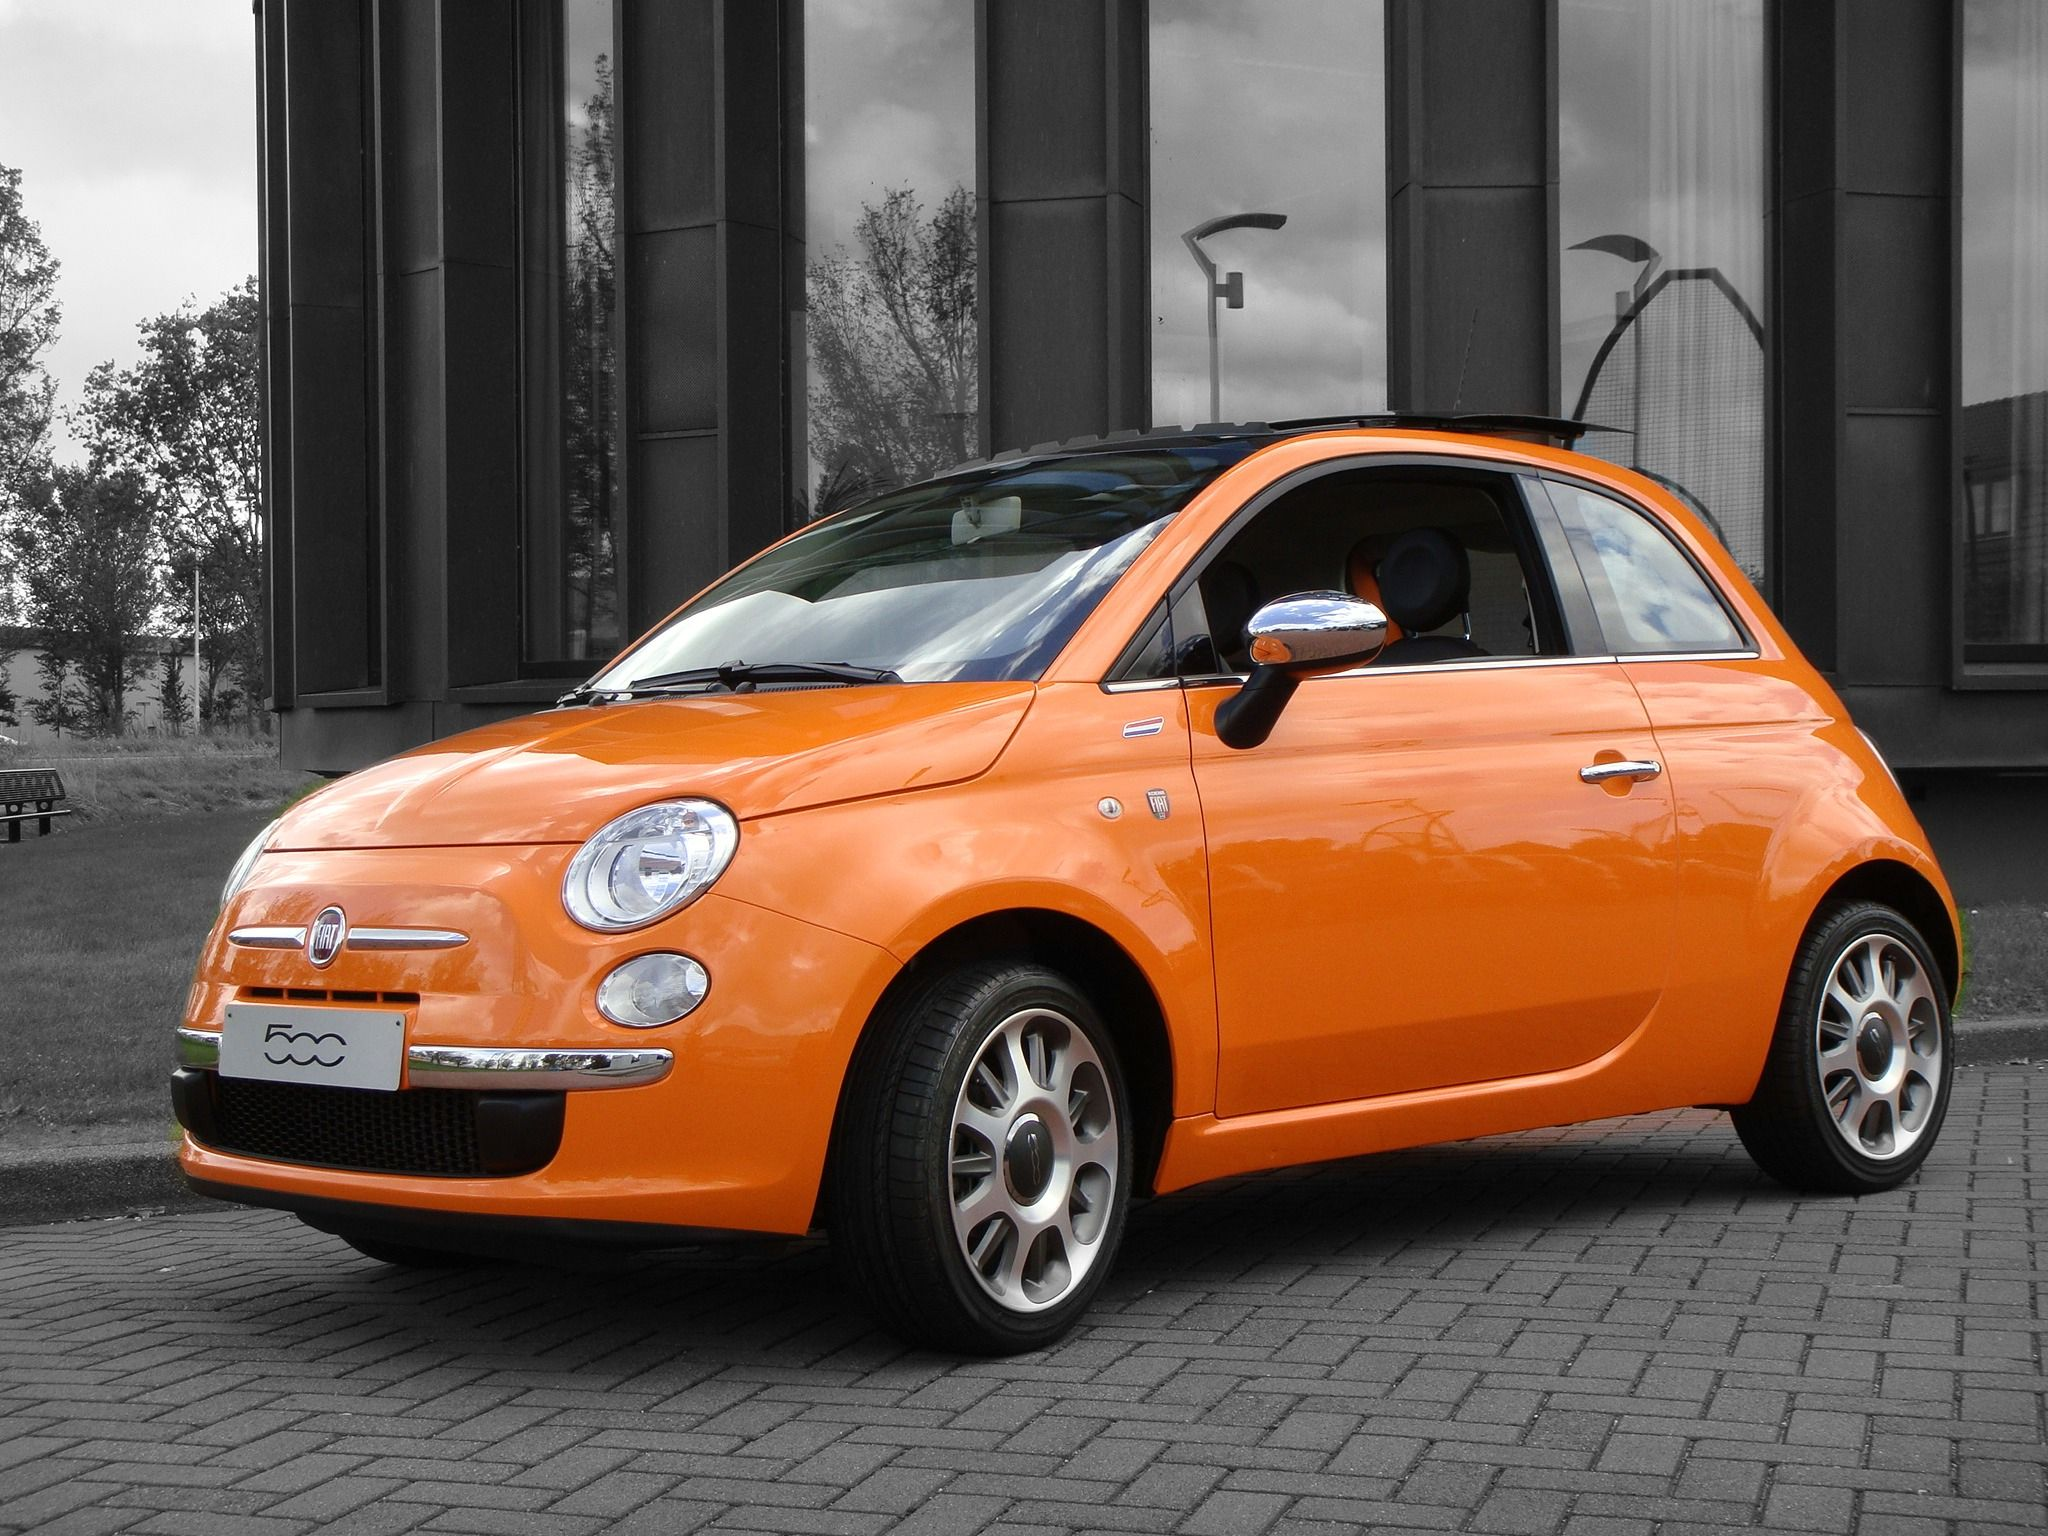 Fiat 500 Orange Specially Made For The Netherlands The